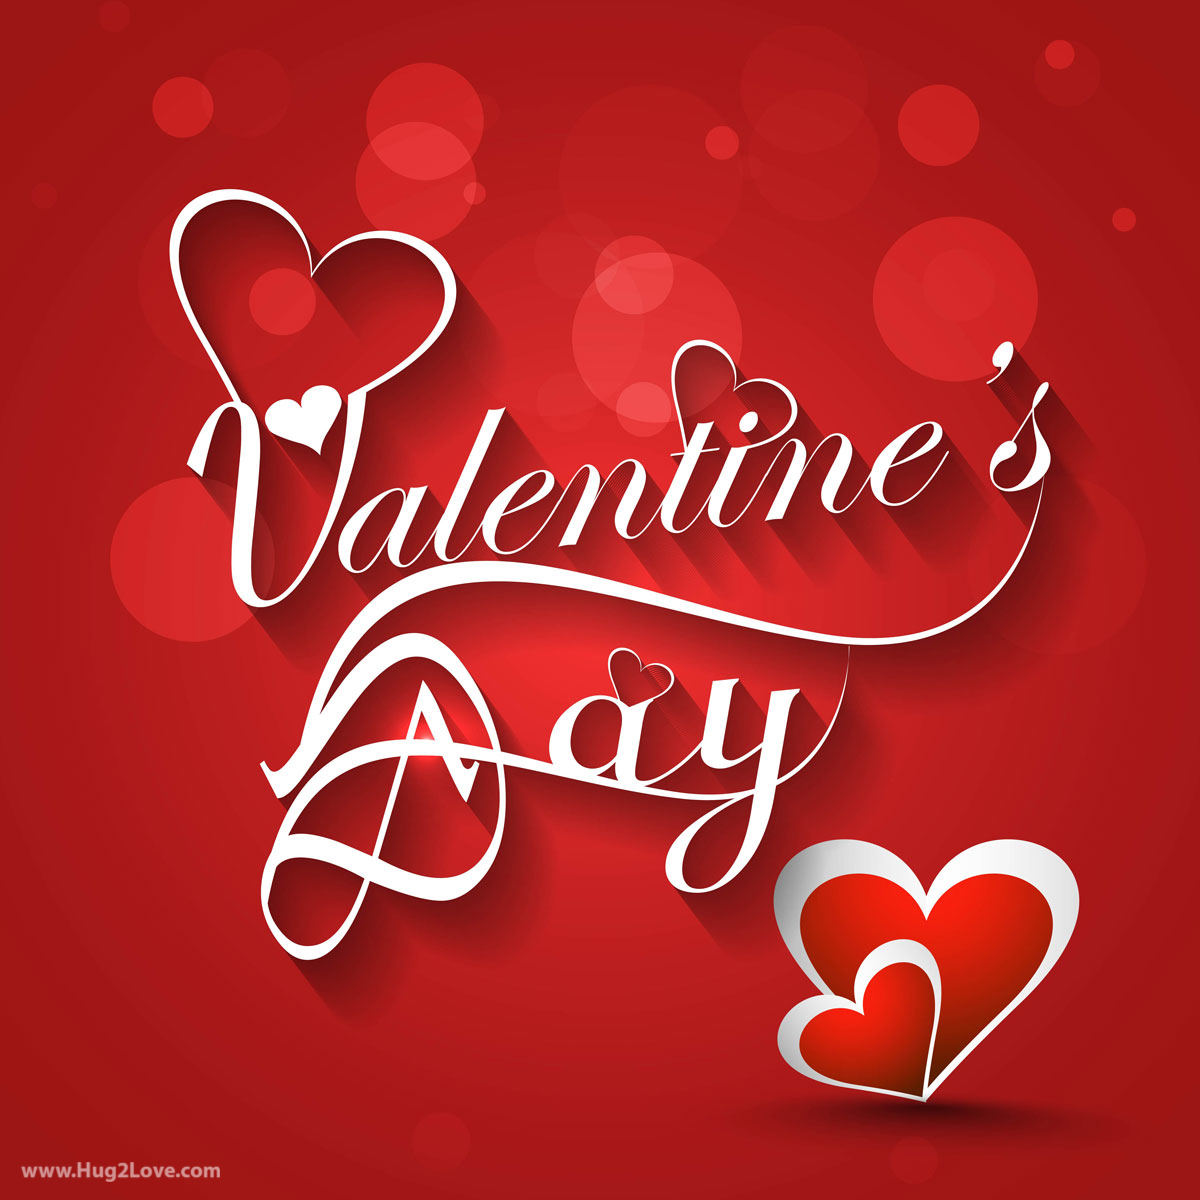 Free download 100 Happy Valentines Day Image Wallpapers 2020